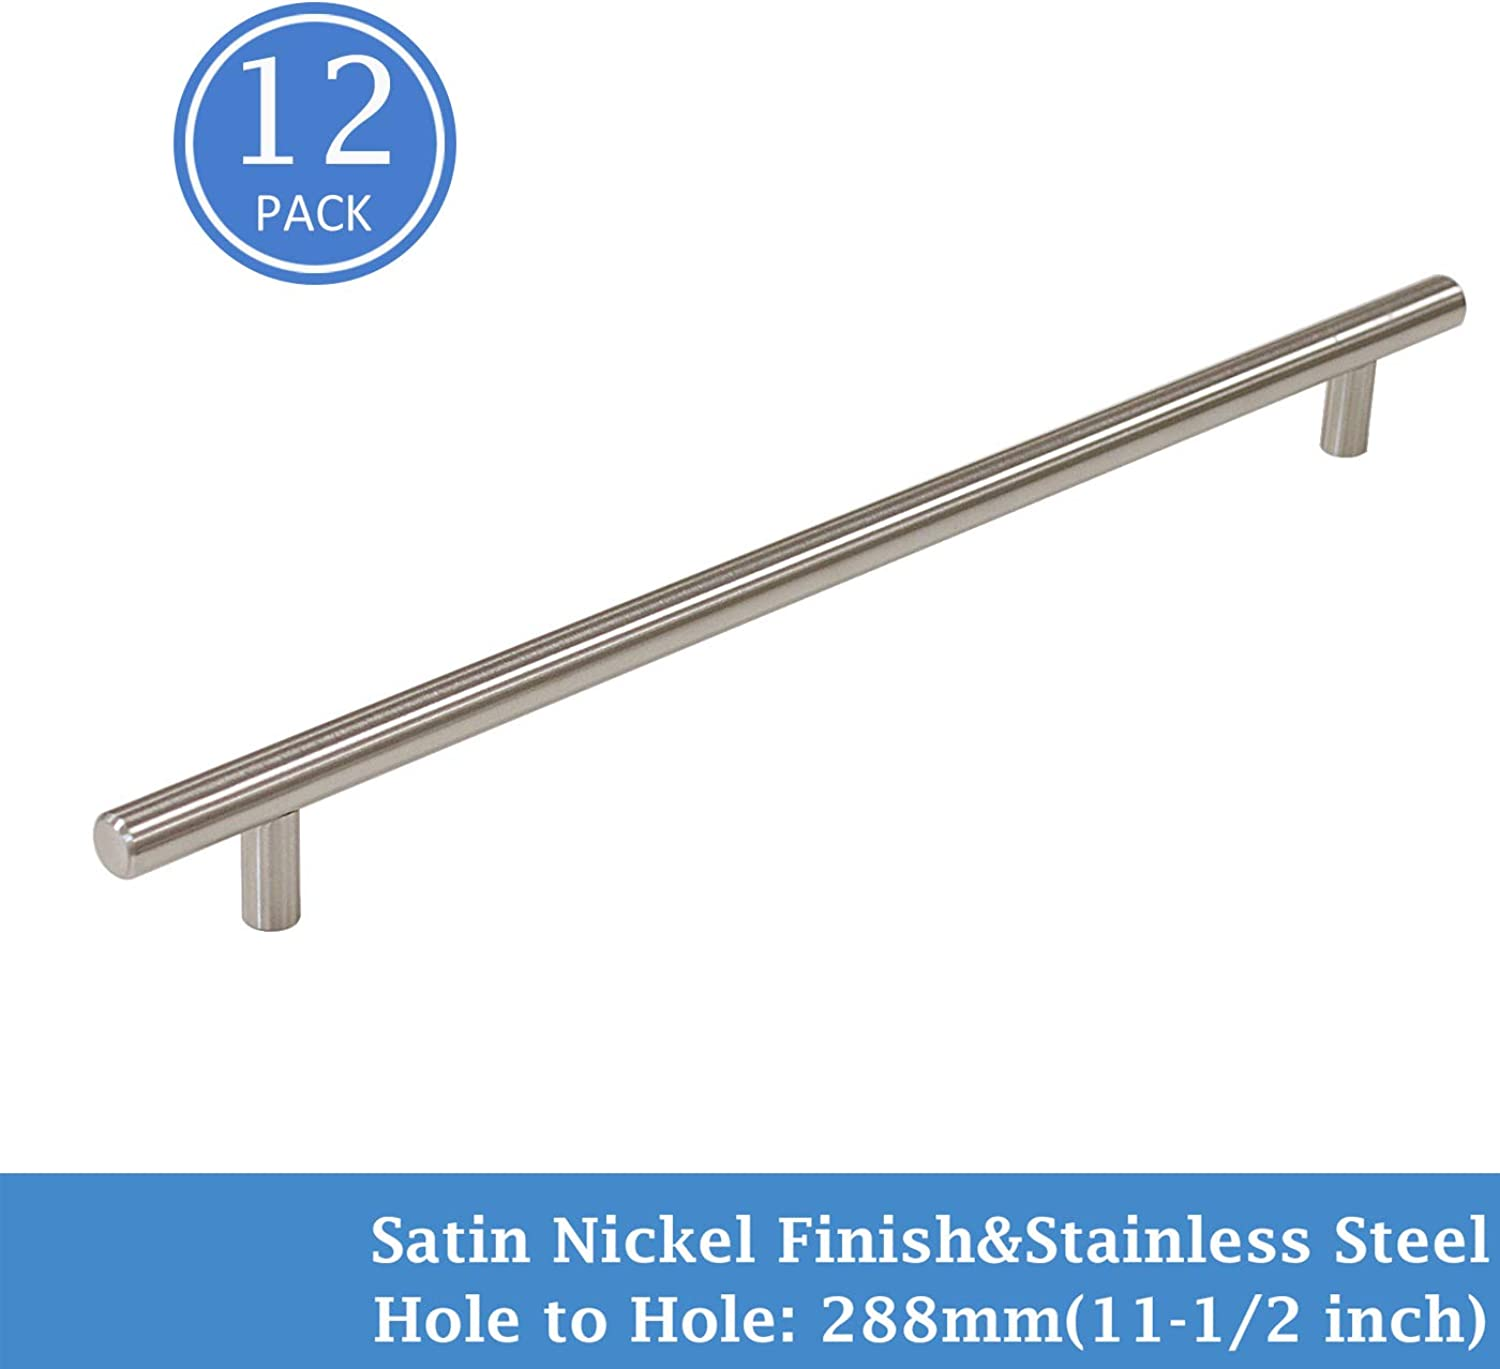 12 Pack Drawer Handles Replacement 11-1 2  Hole Centers Satin Nickel Finish T Bar Cabinet Pulls Stainless Steel Kitchen Cupboard Modern Style Handles